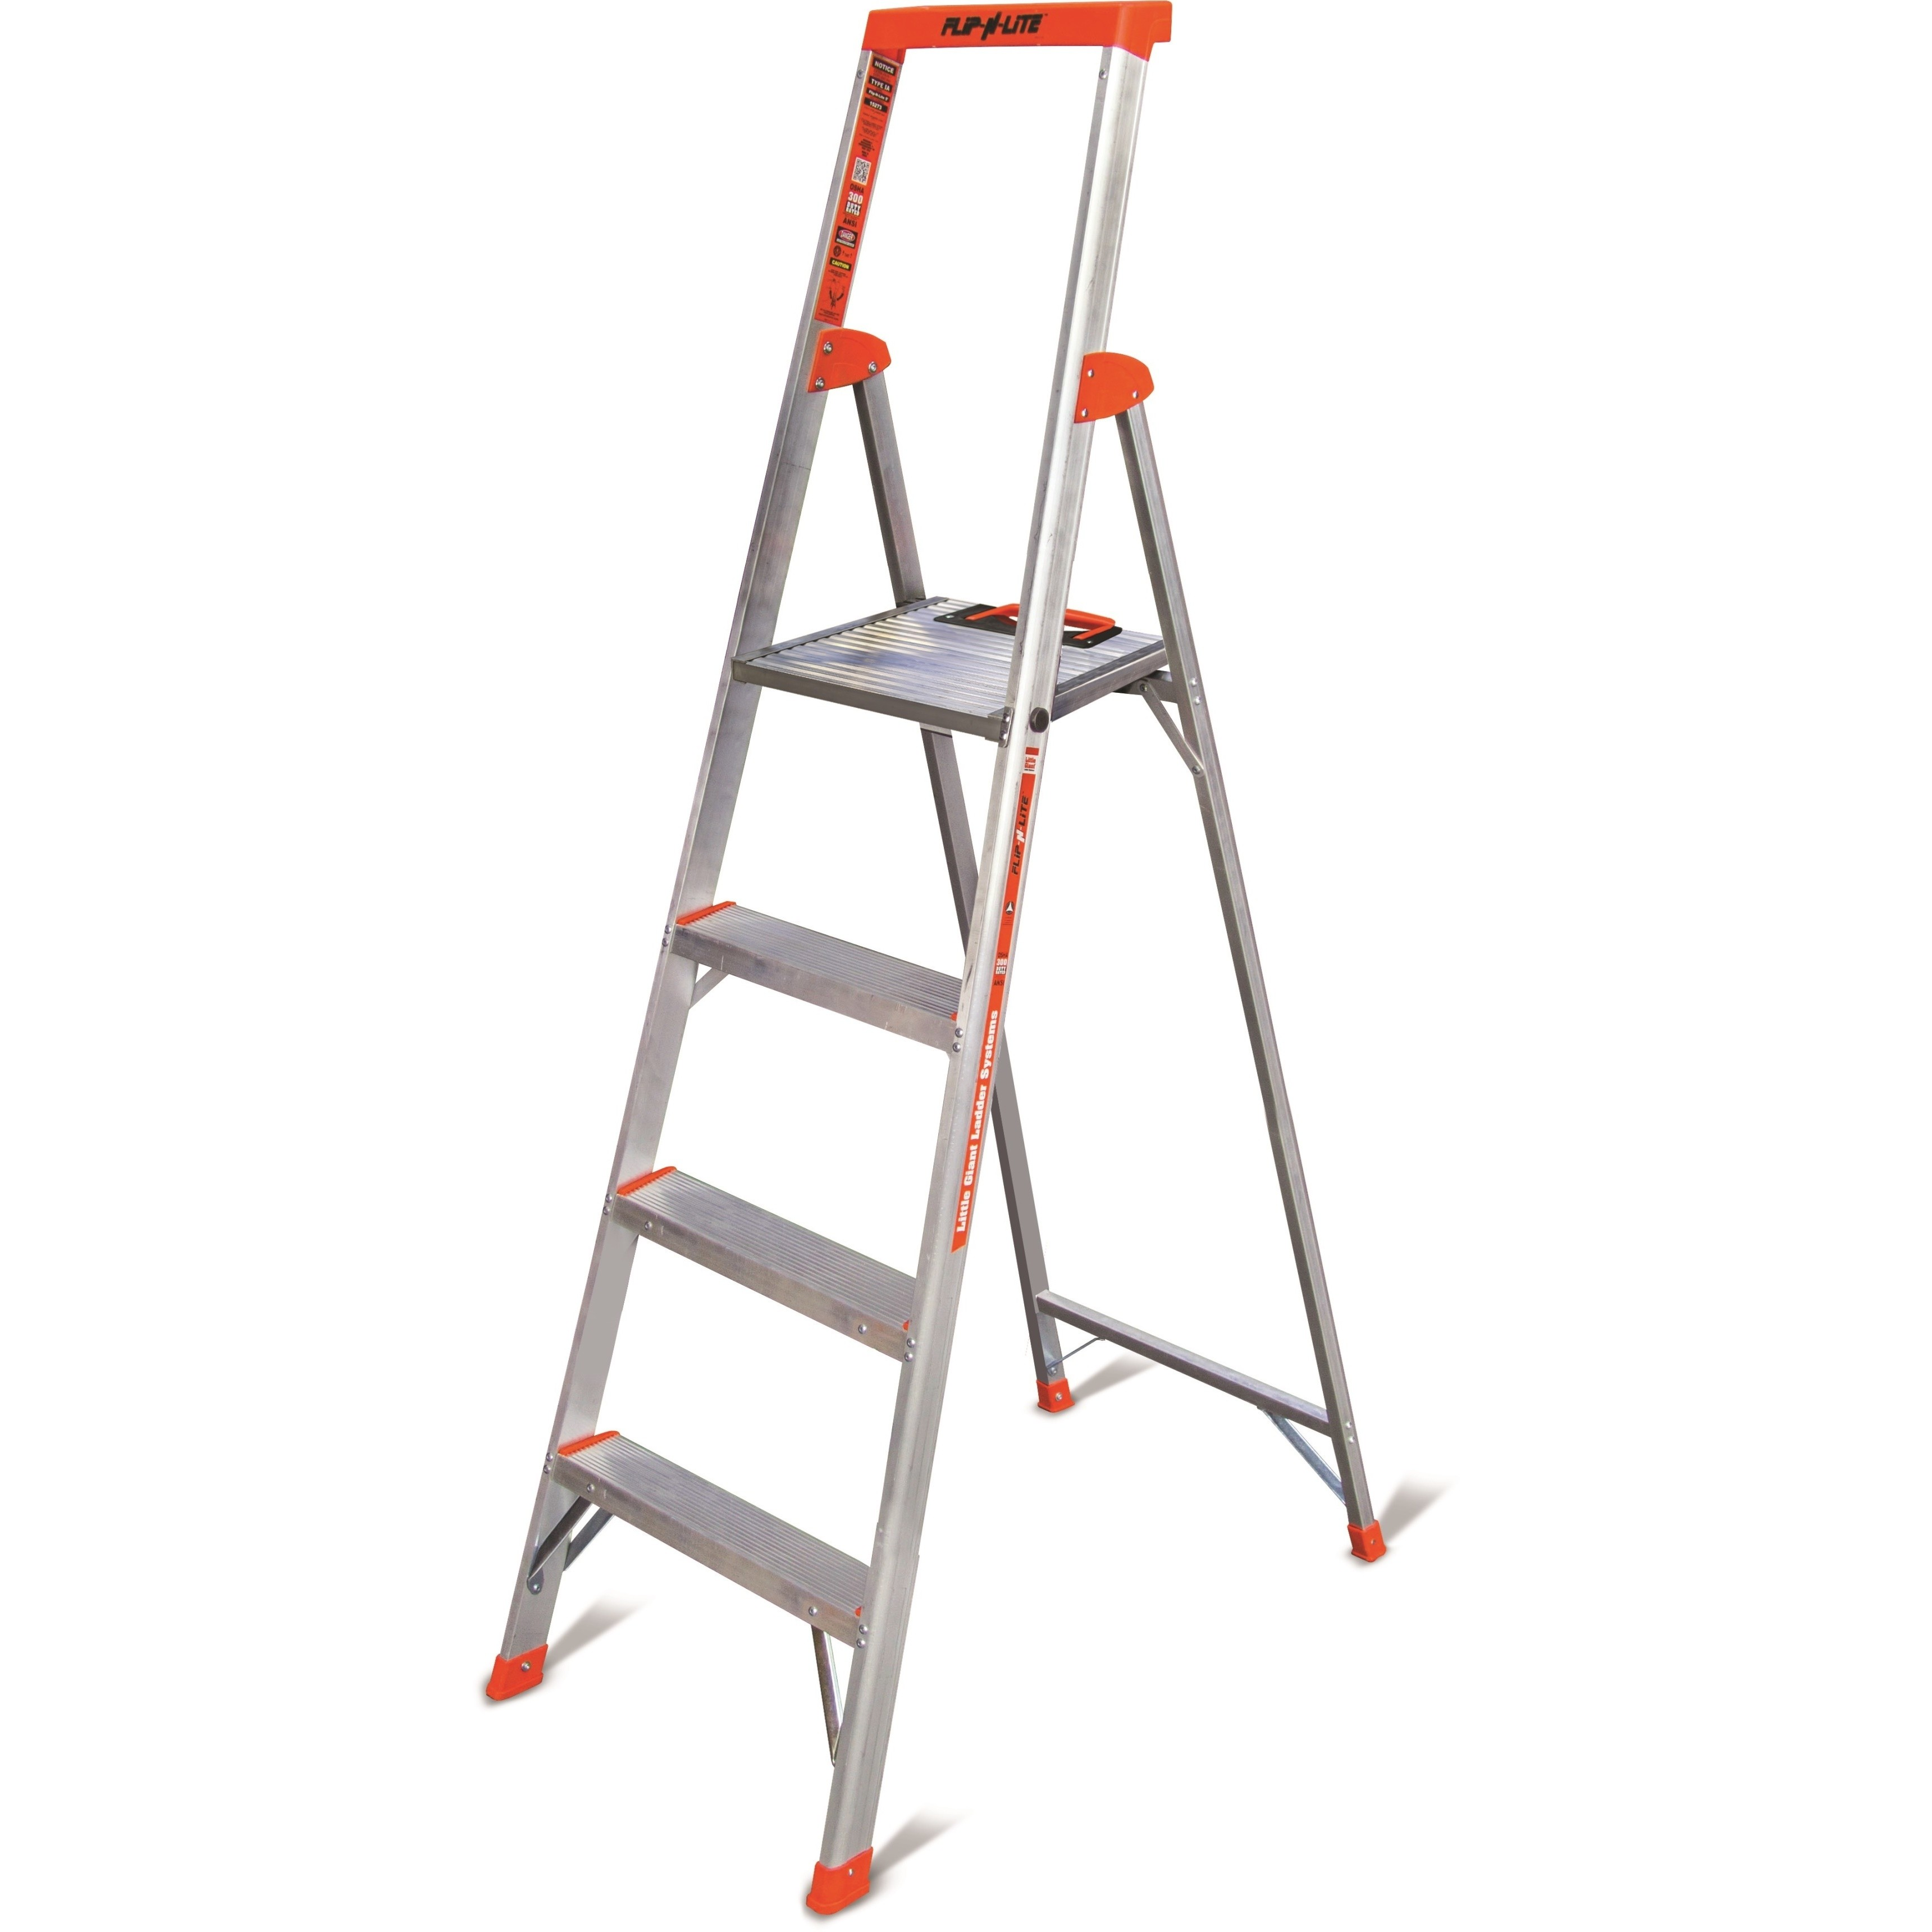 Where To Buy Little Giant Ladder Top Home Information